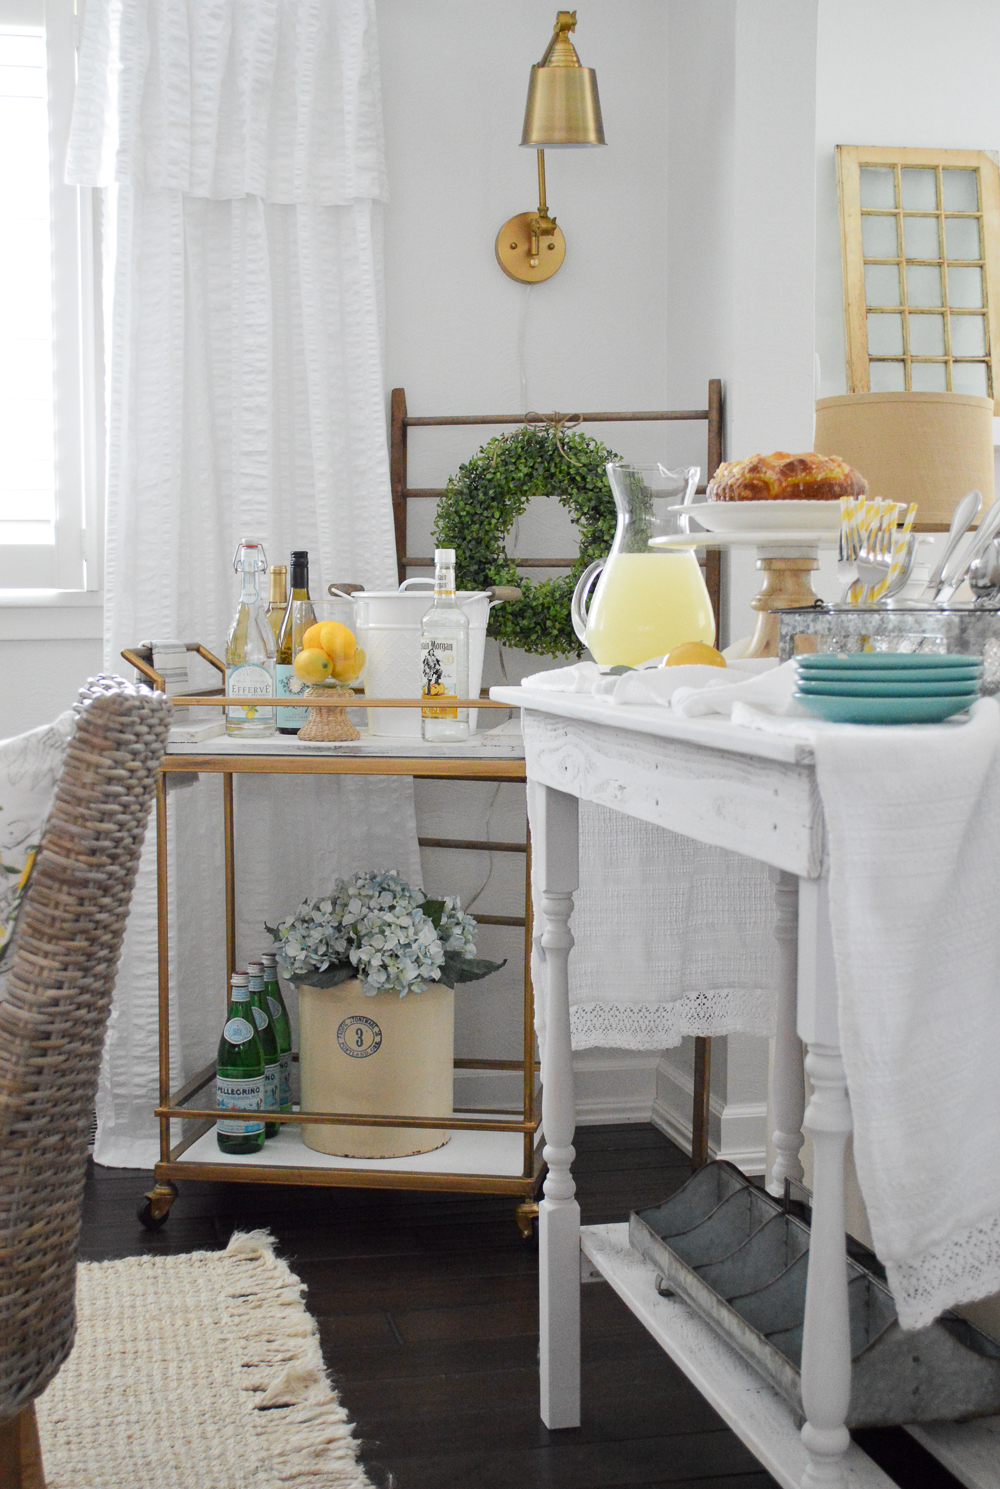 Love the gold bar cart and the brass wall sconce!